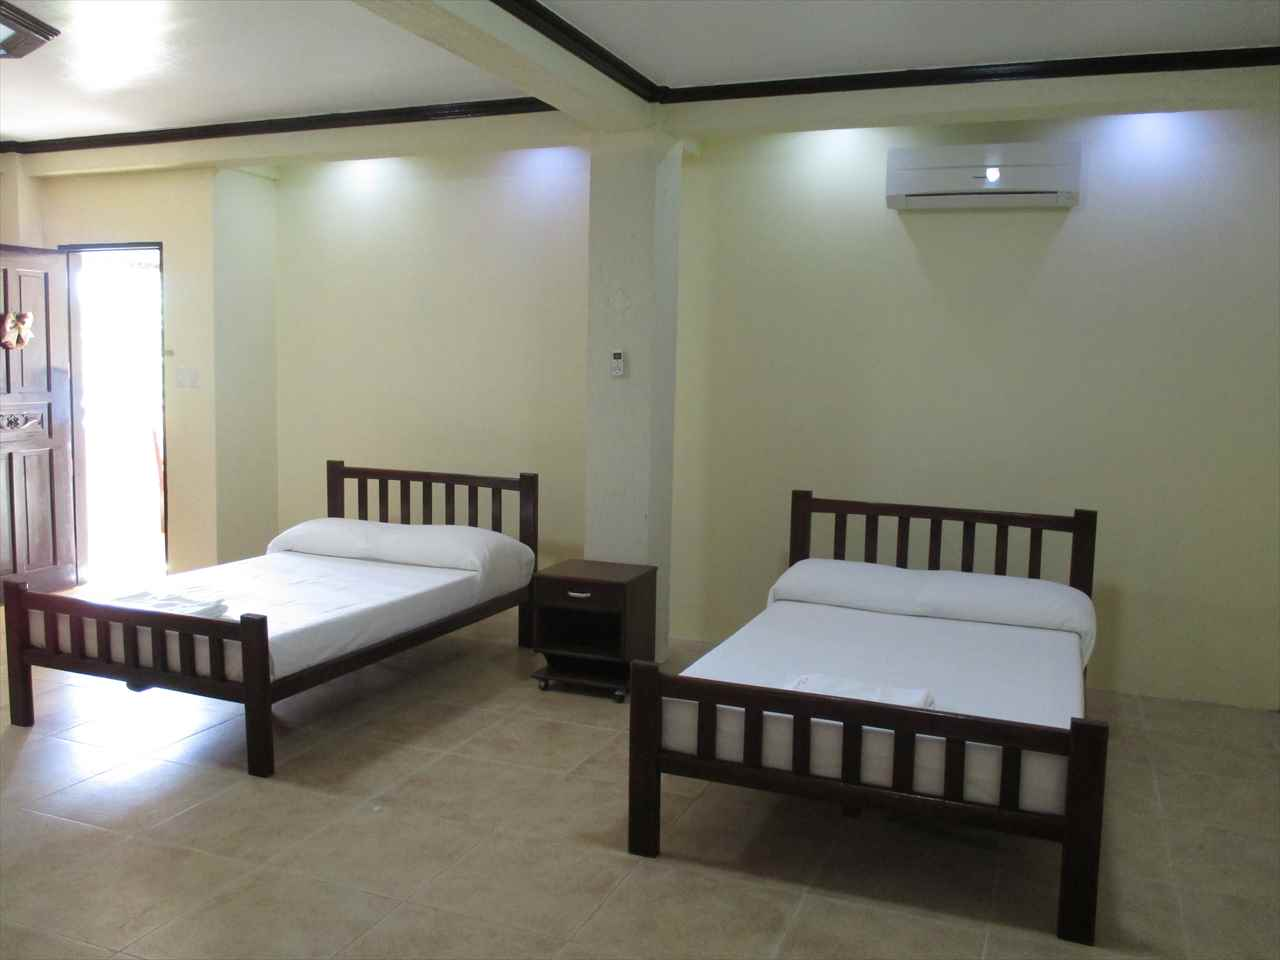 2 Double size beds, air-con